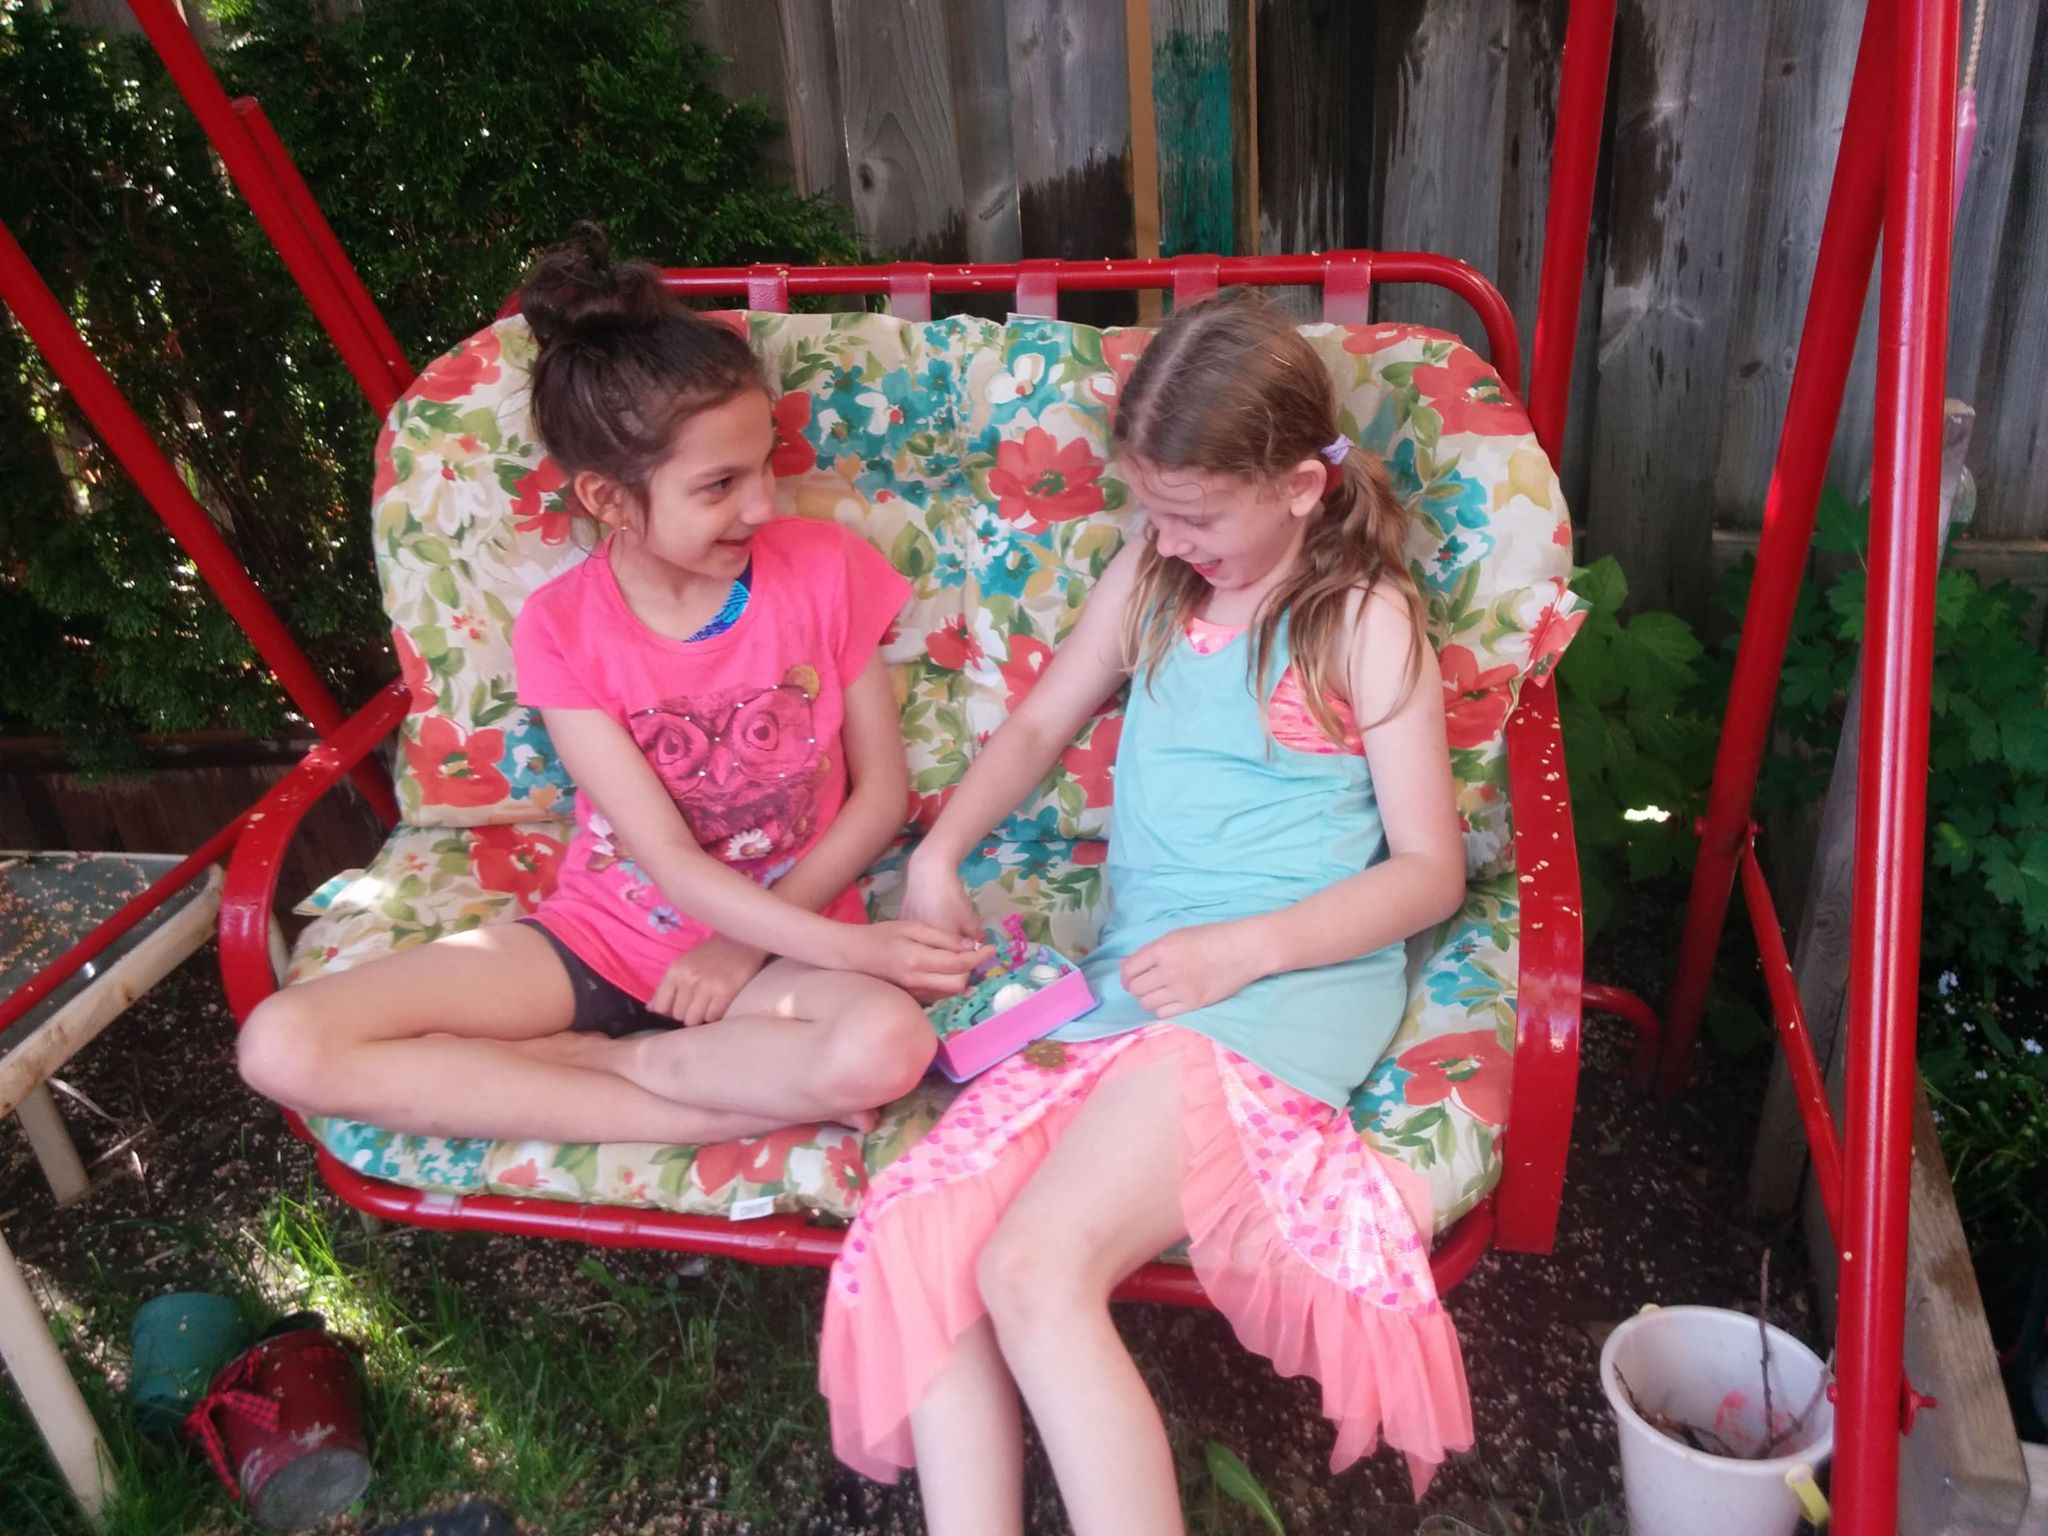 Two girls playing with Polly Pocket dolls on a red swing